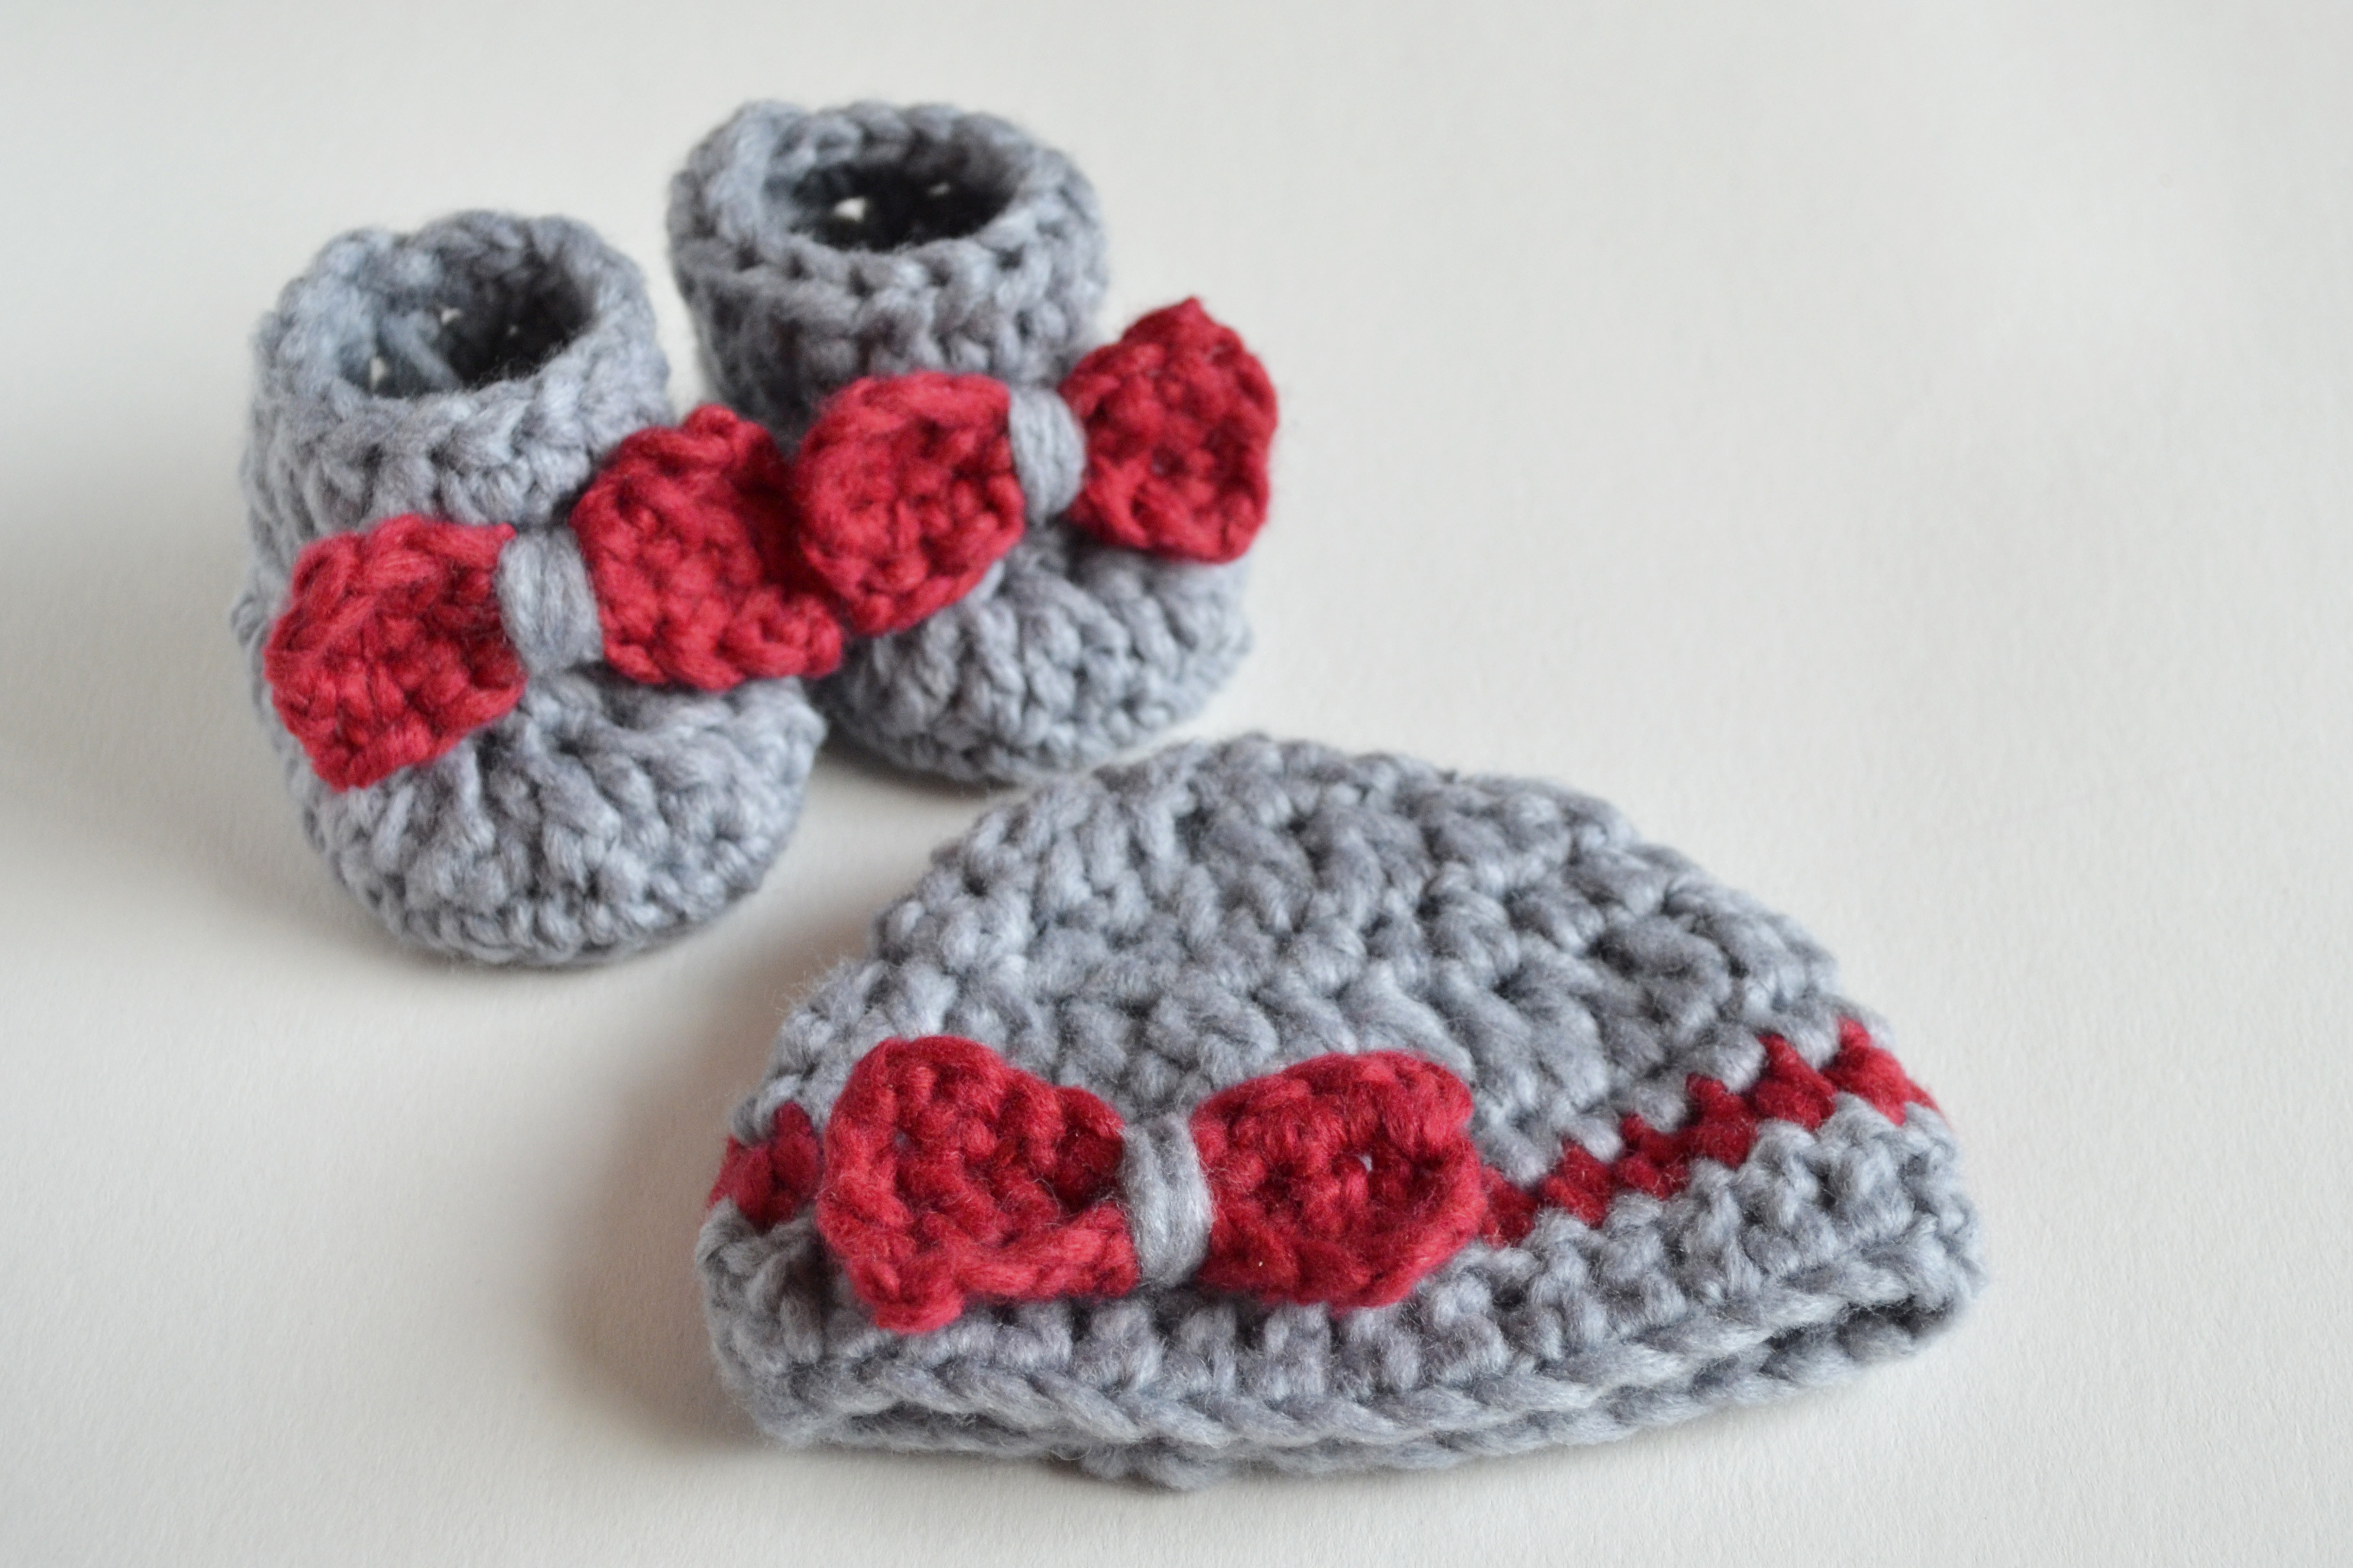 Luxury so Fluffy – Crochet Baby Booties and Beanie Free – Croby Crochet Baby Slippers Of Marvelous 50 Images Crochet Baby Slippers